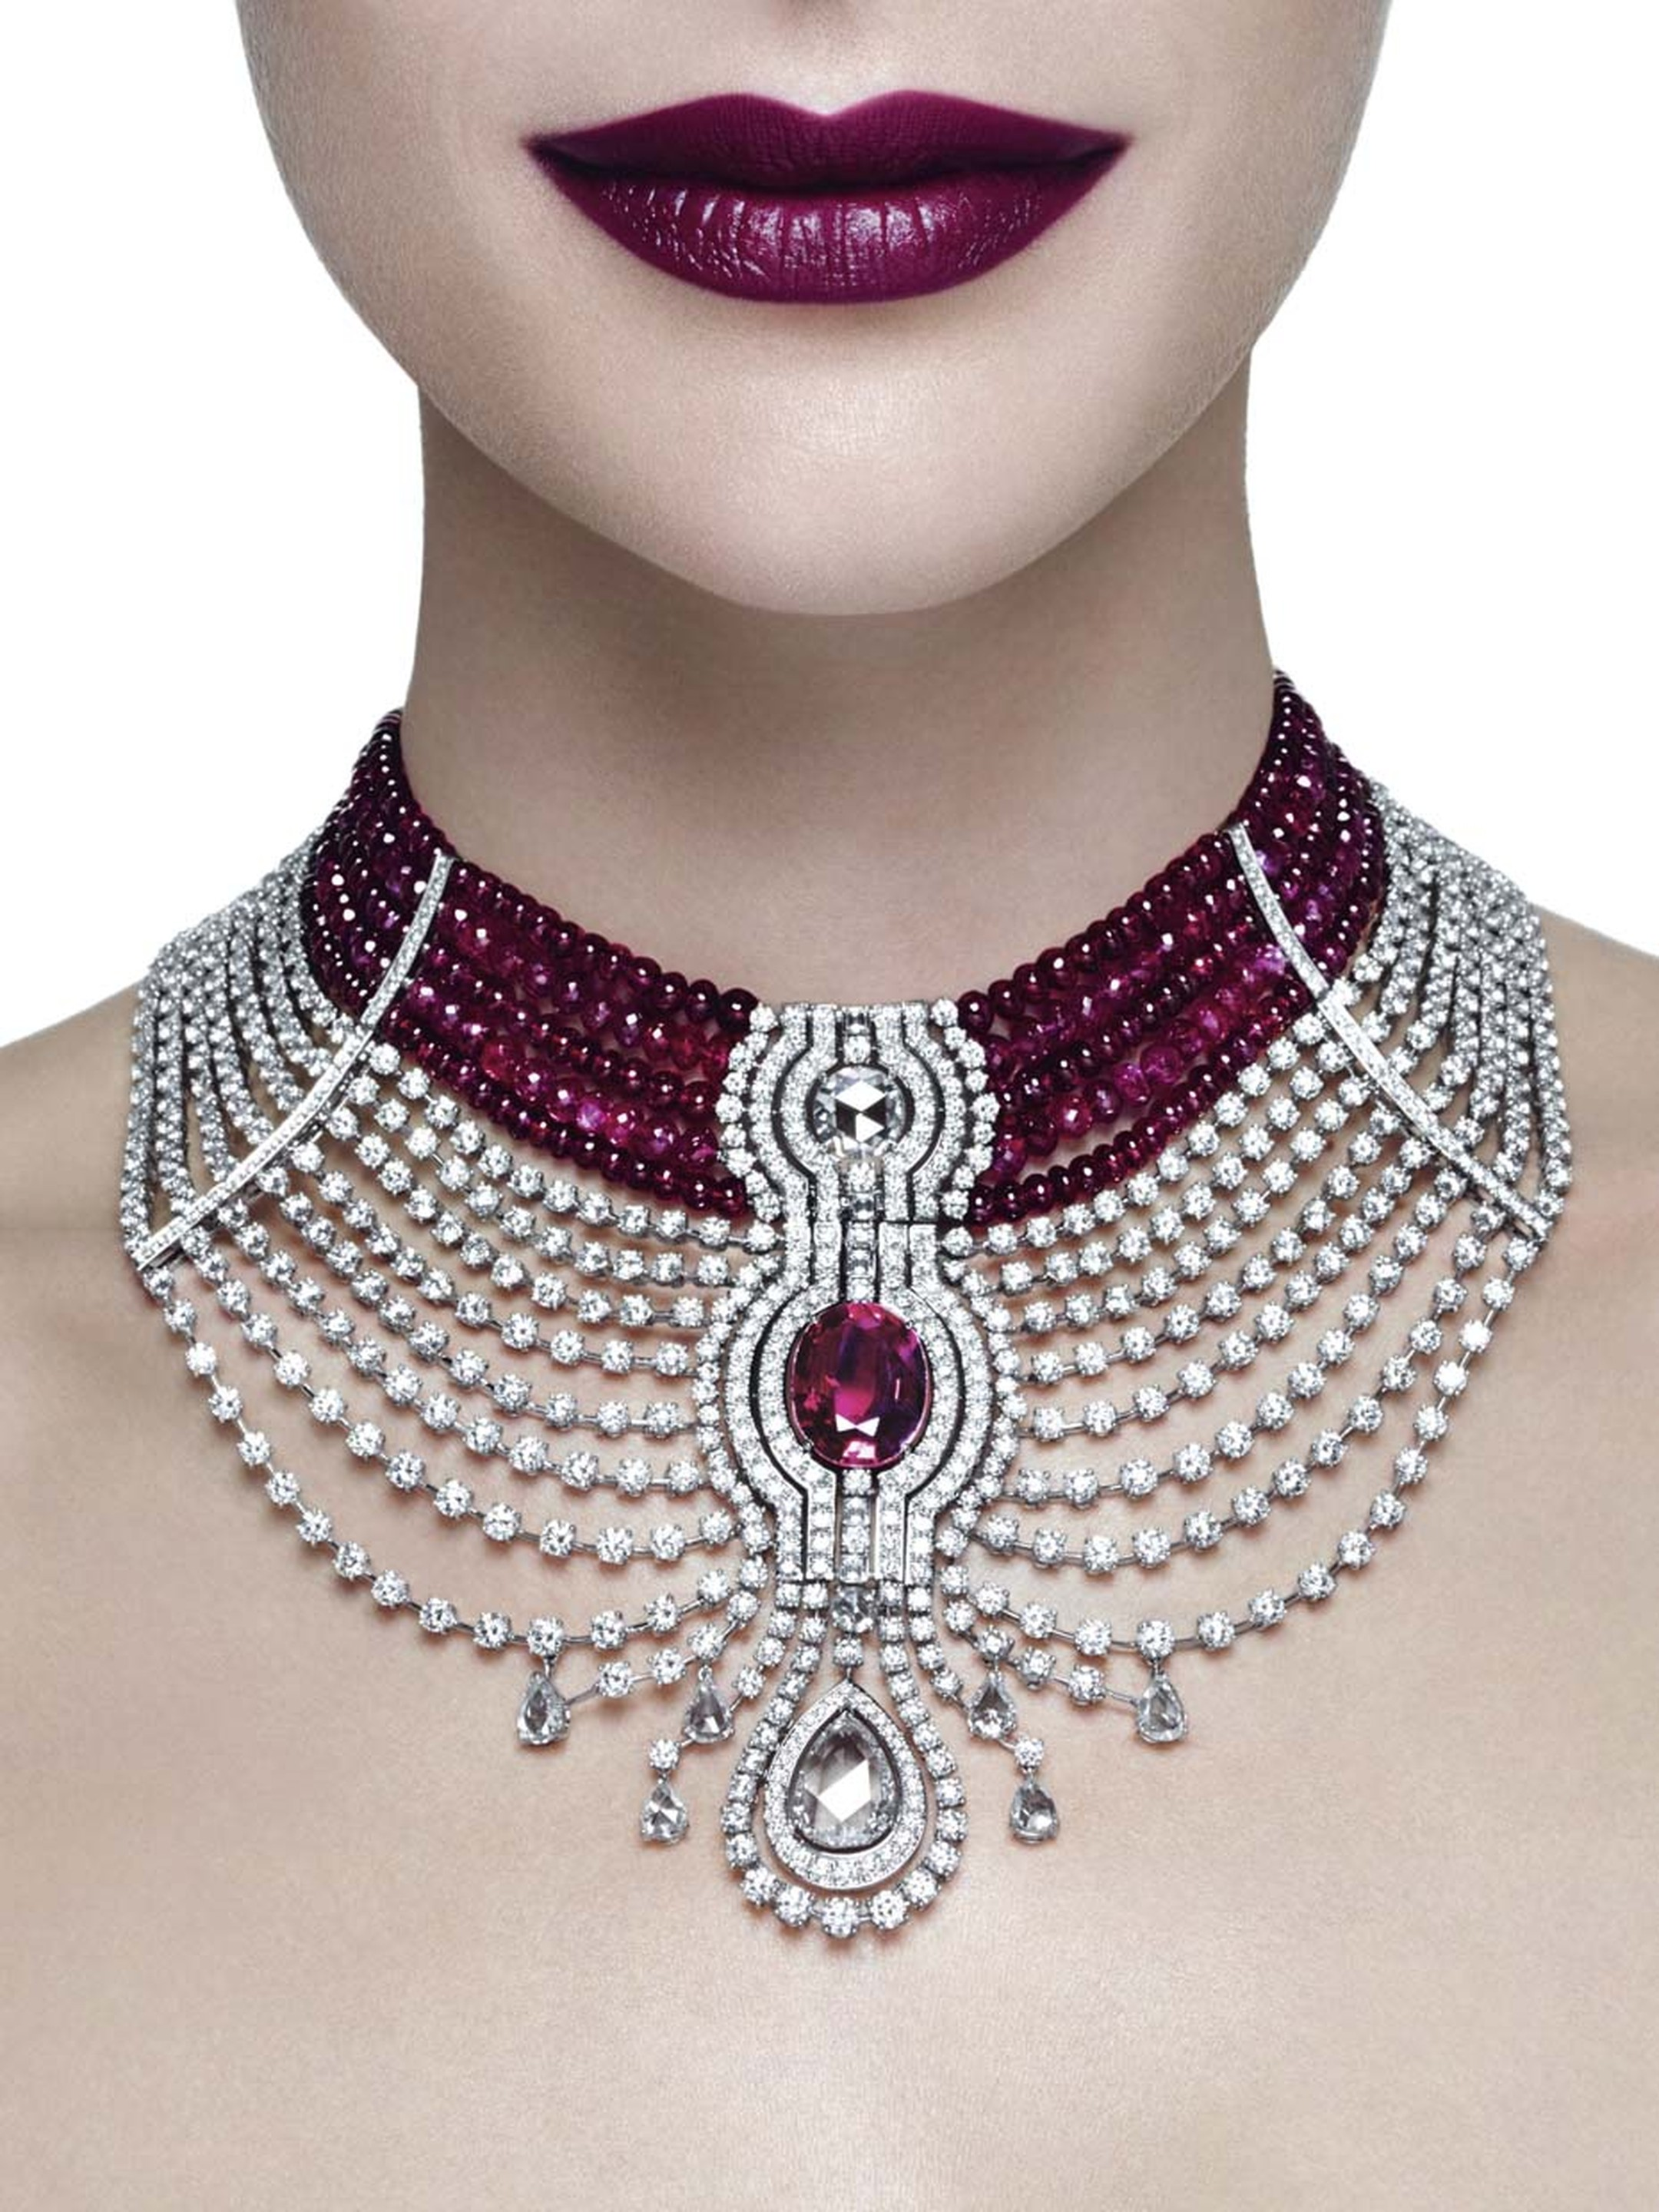 The star of Cartier's Reine Makéda necklace, part of the Royal collection, created for the Biennale des Antiquaires, is a 15ct oval-shaped ruby from Mozambique, with ruby beads and diamonds completing the elaborate choker-style necklace.